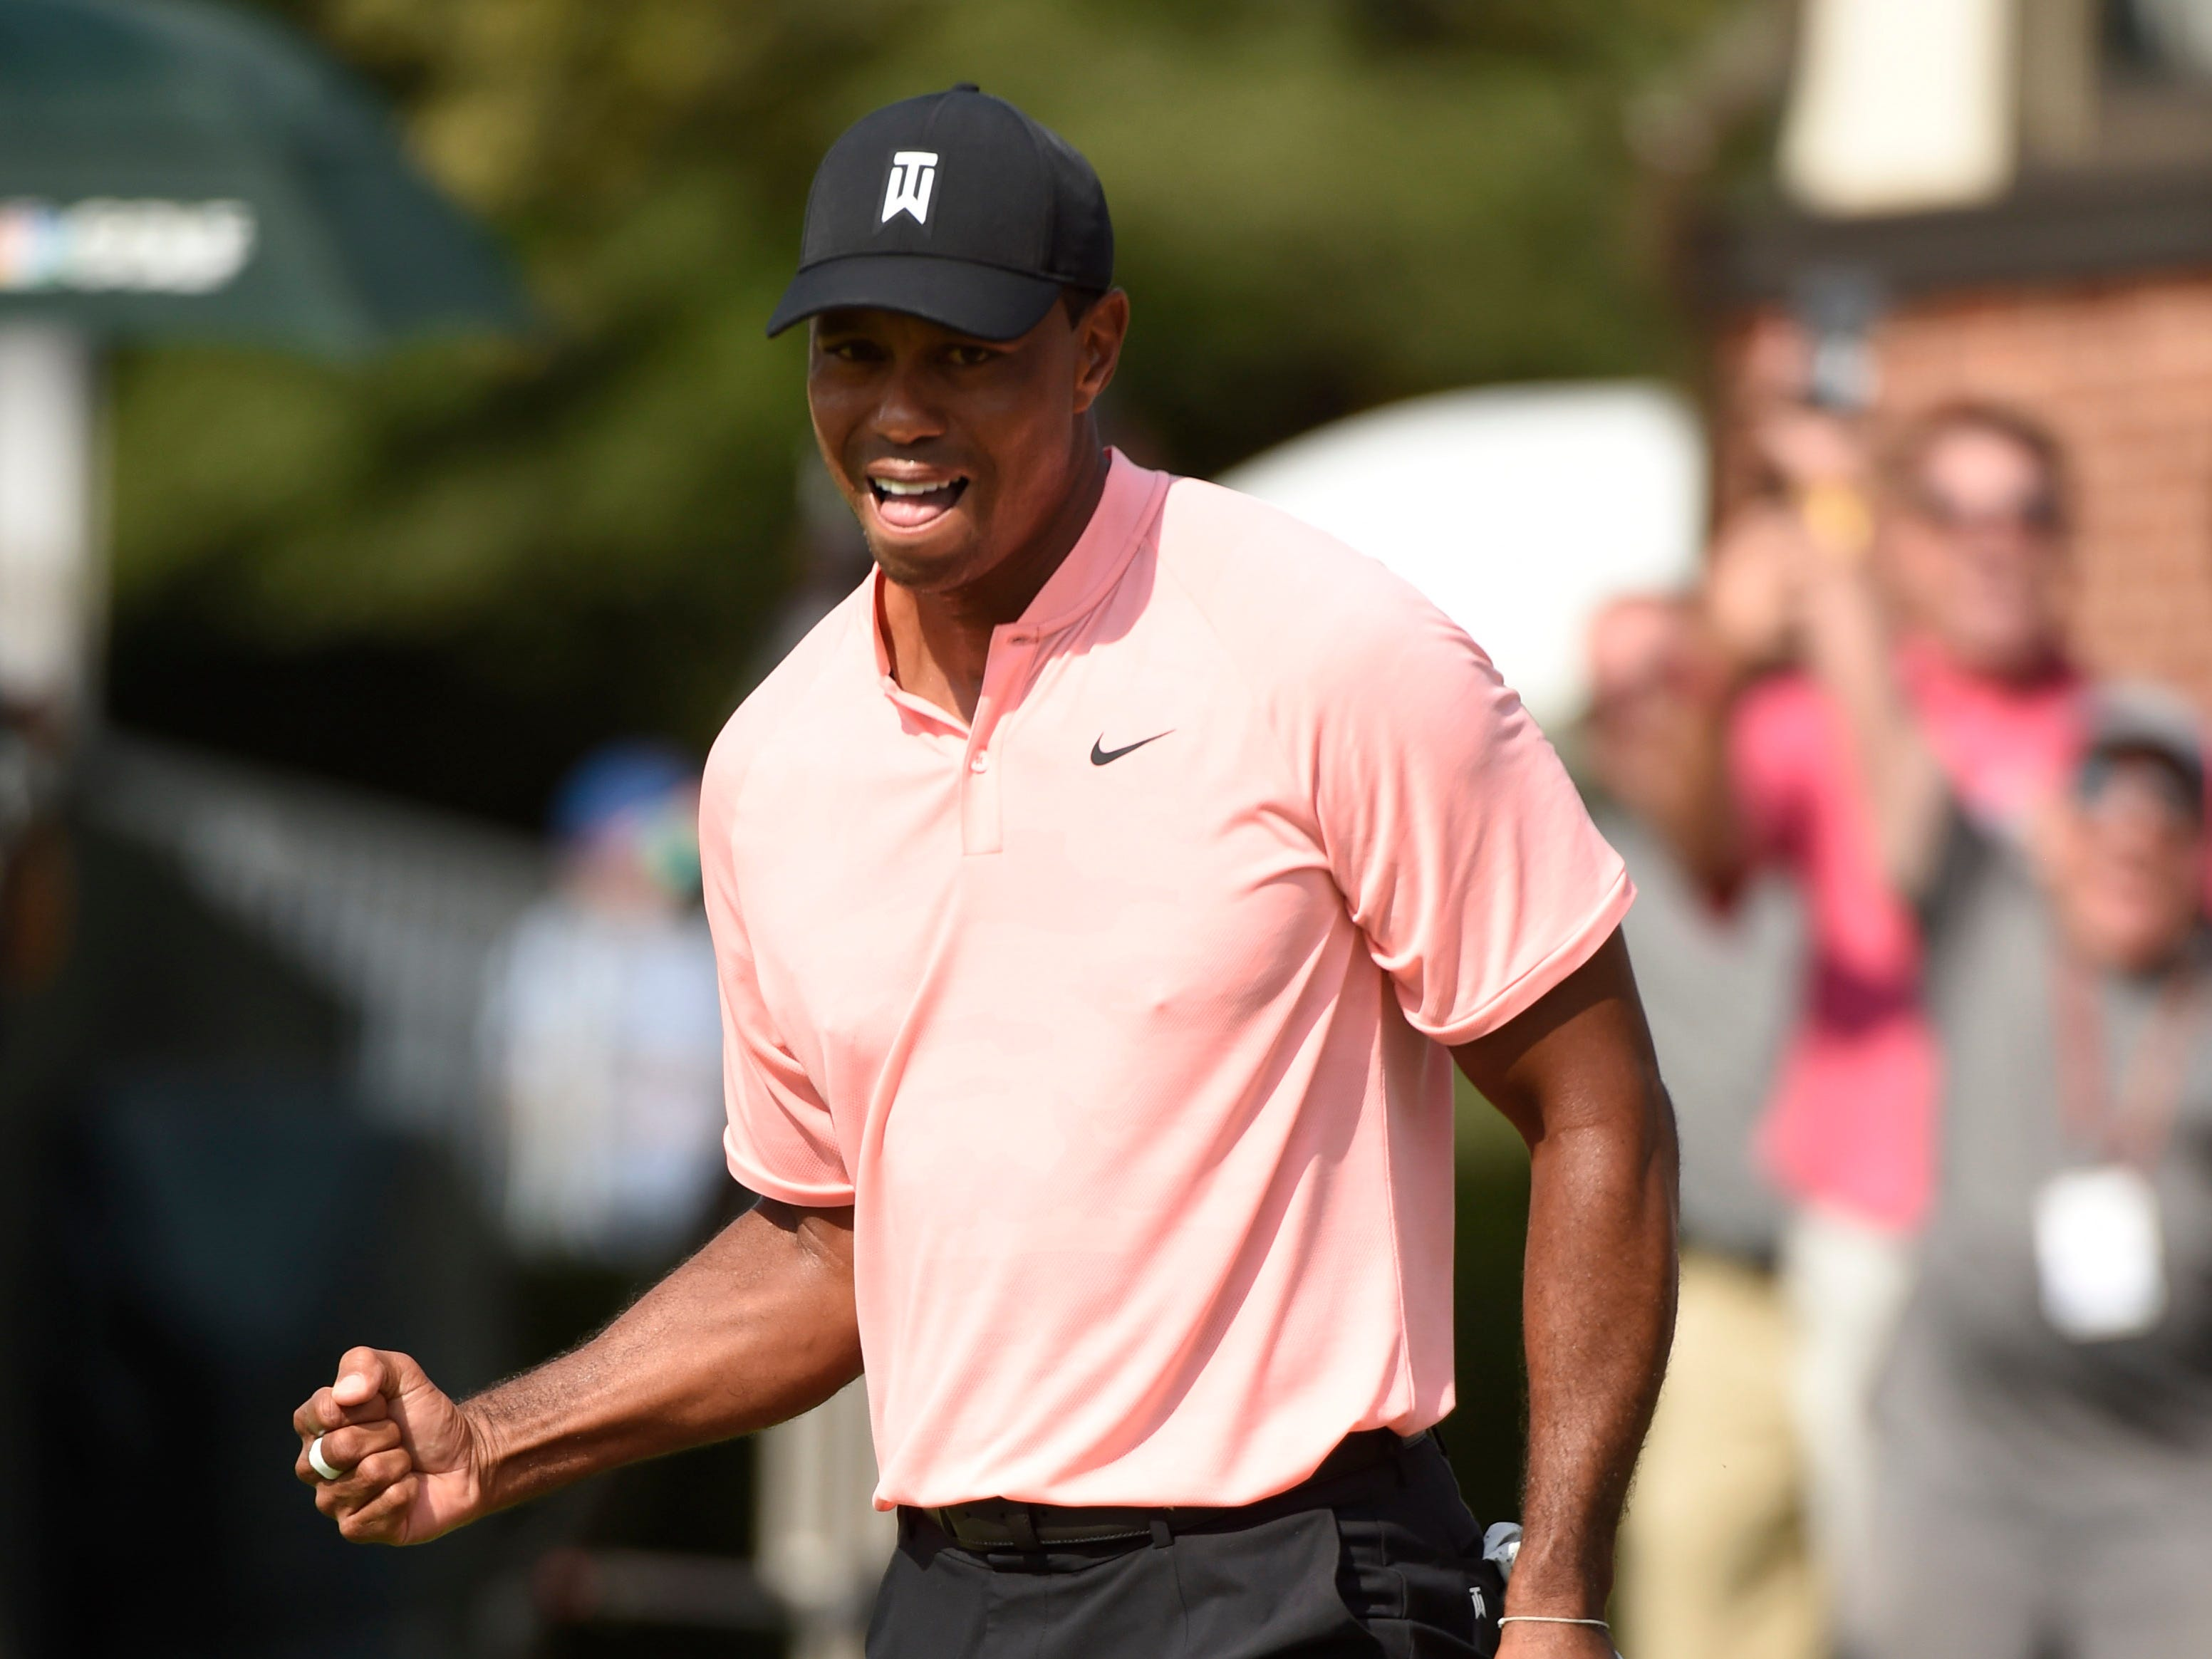 Tiger Woods celebrates making a putt for eagle on the 18th hole during the first round of the Tour Championship at East Lake Golf Club.